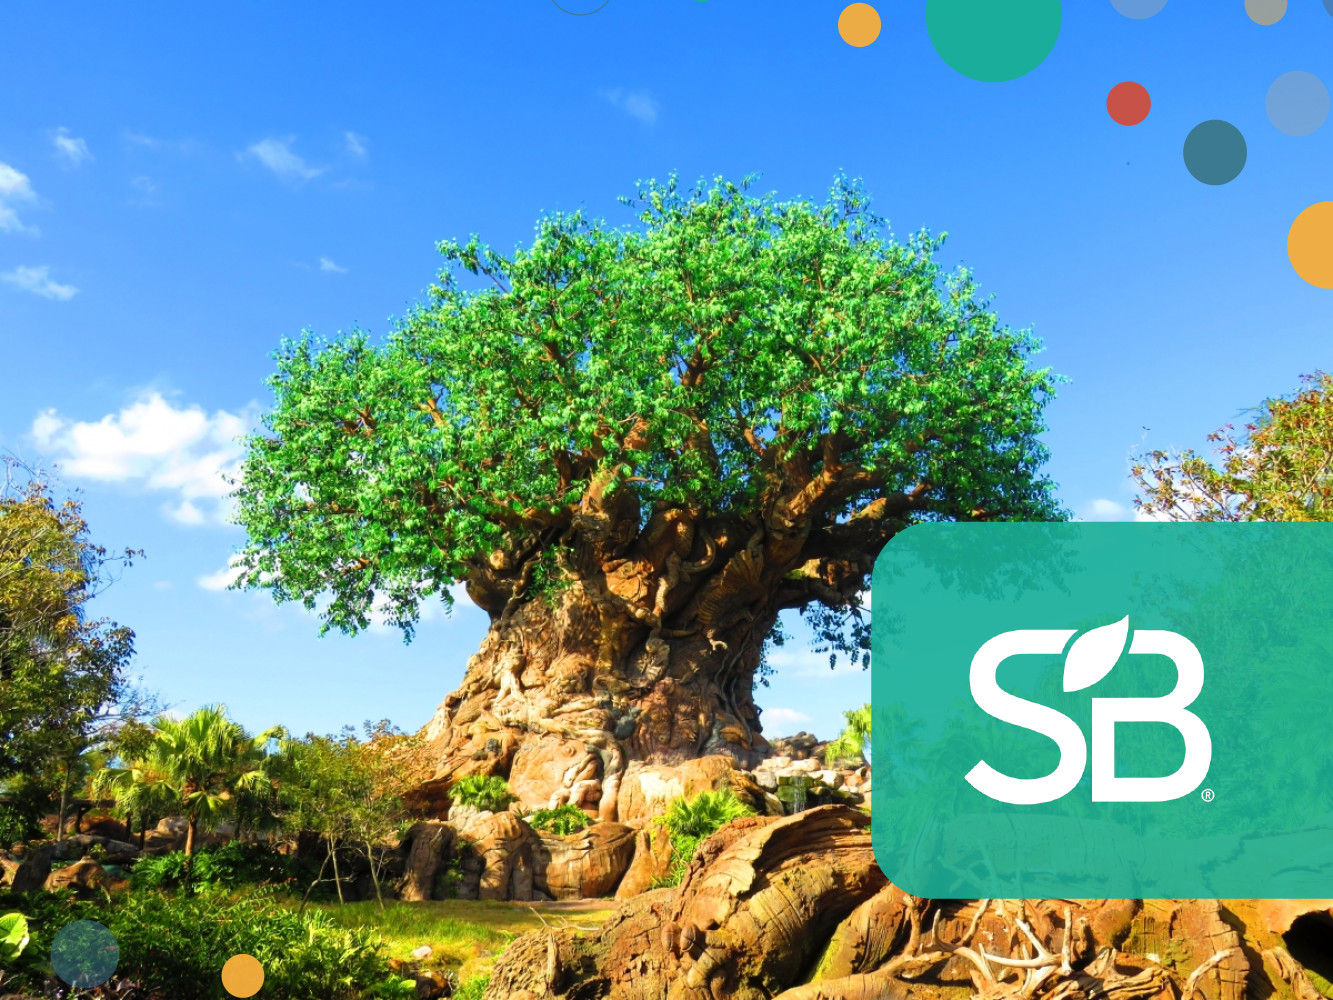 The Disney Conservation Fund Awards $5 Million to Conservation